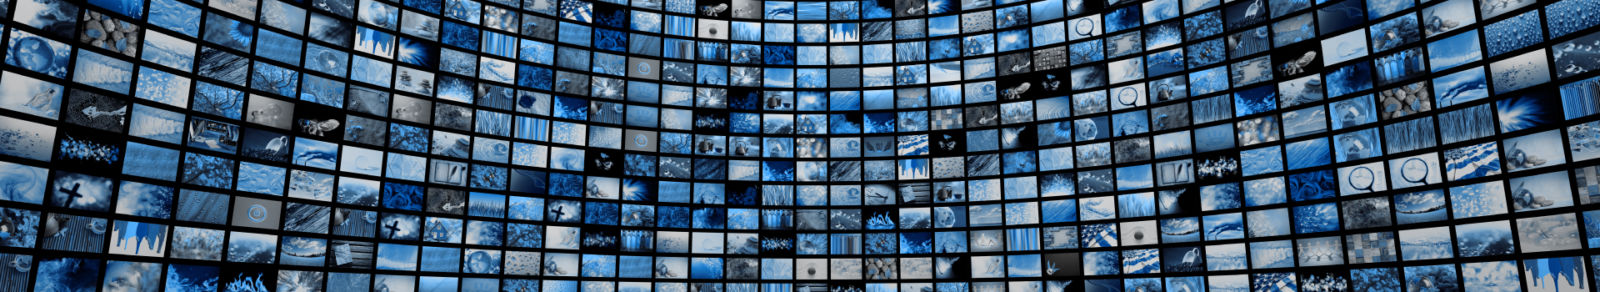 Zoom out giant wall of tv screens in blue